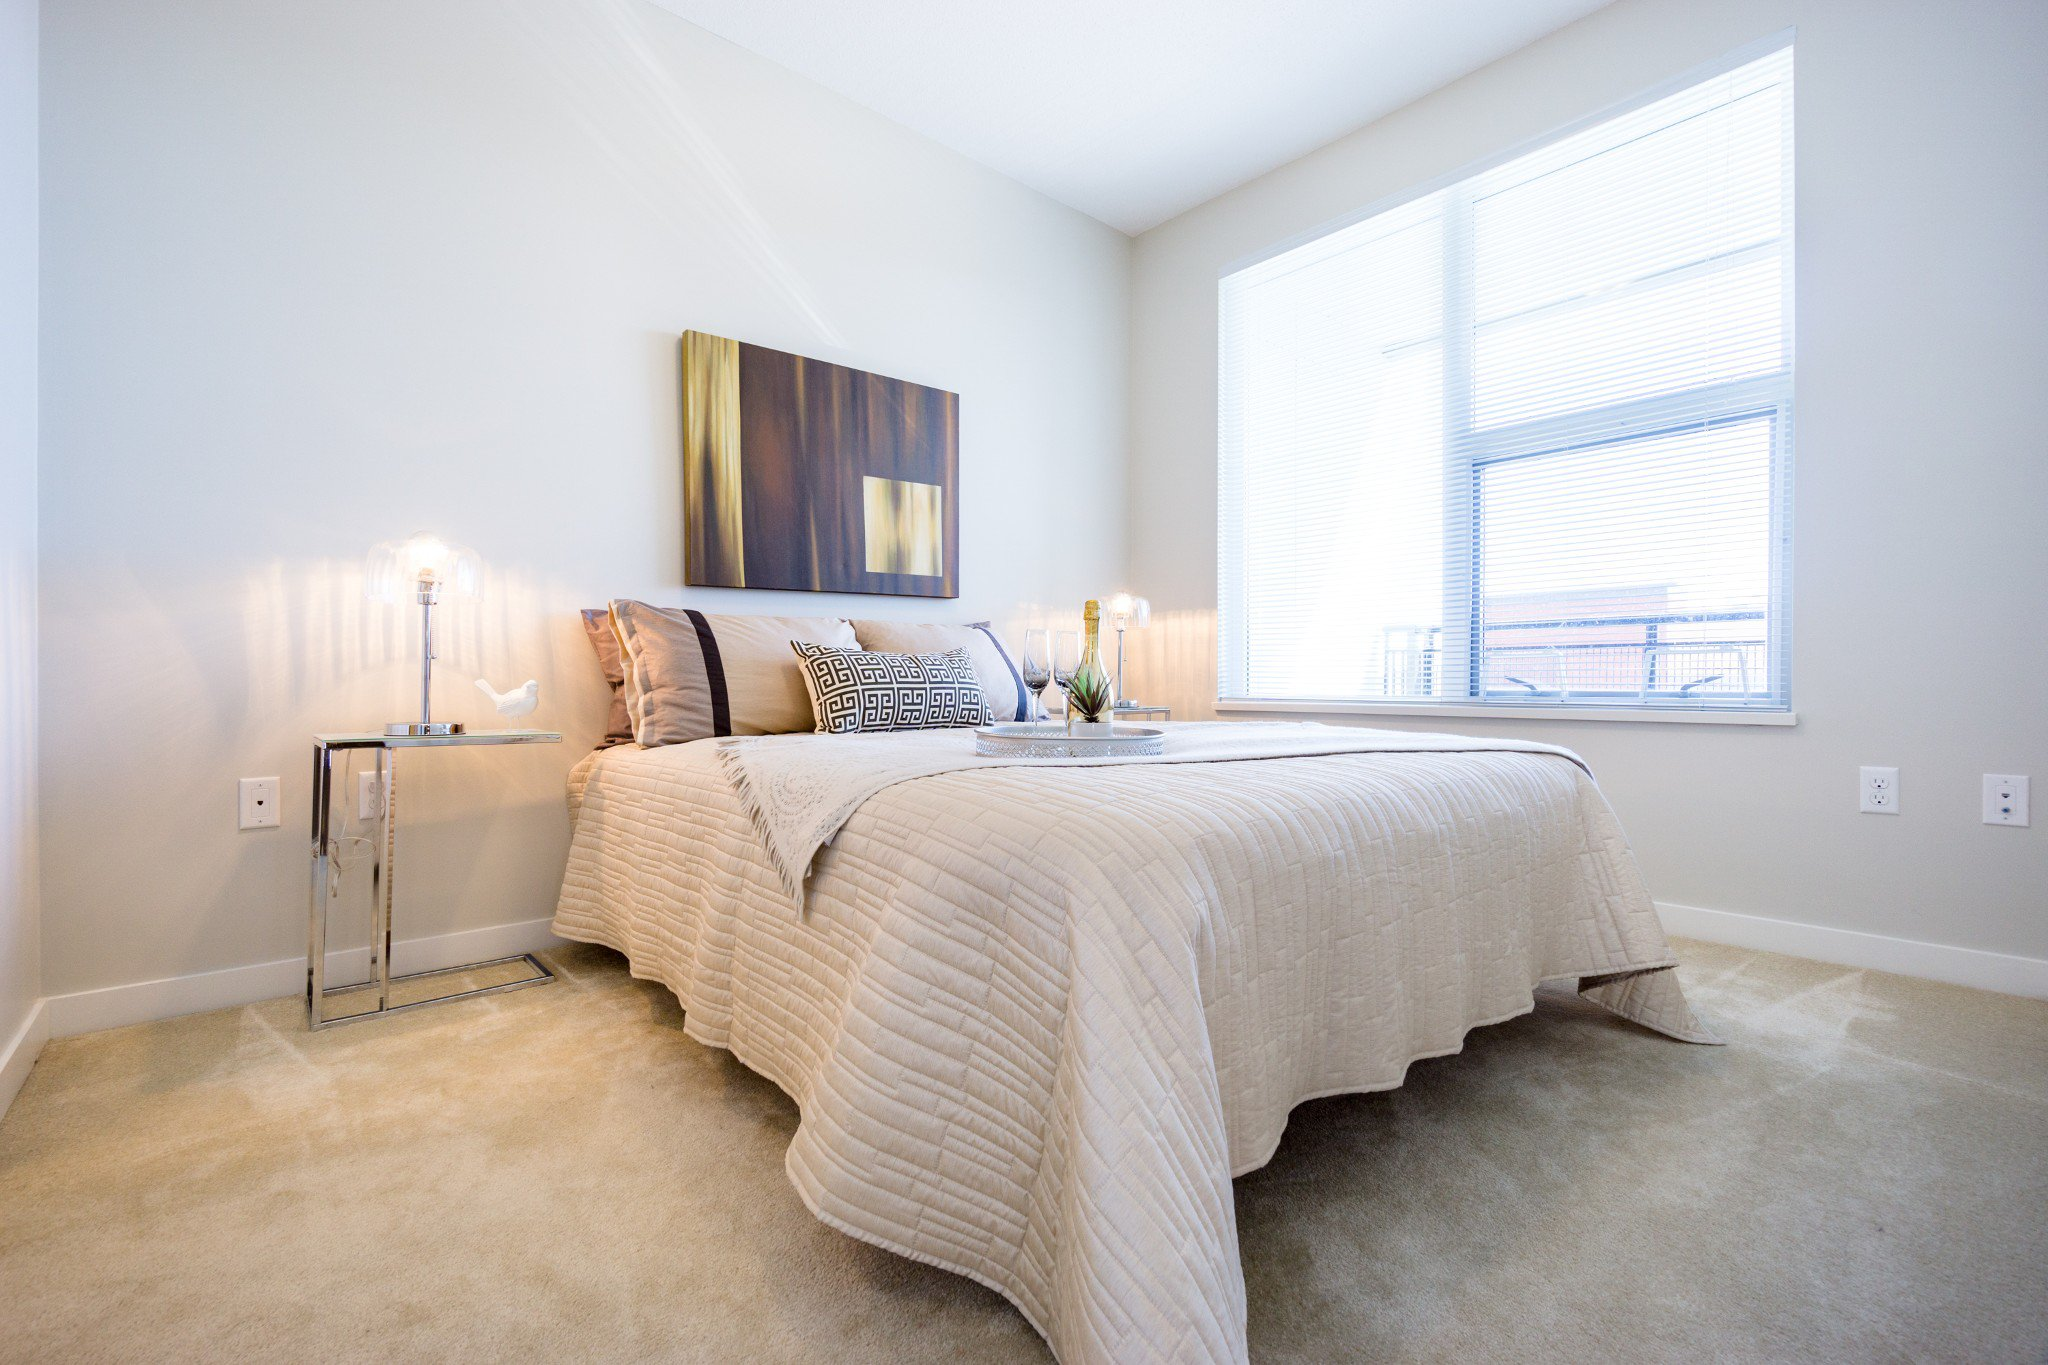 """Photo 24: Photos: 402 9311 ALEXANDRA Road in Richmond: West Cambie Condo for sale in """"ALEXANDRA COURT"""" : MLS®# R2266613"""